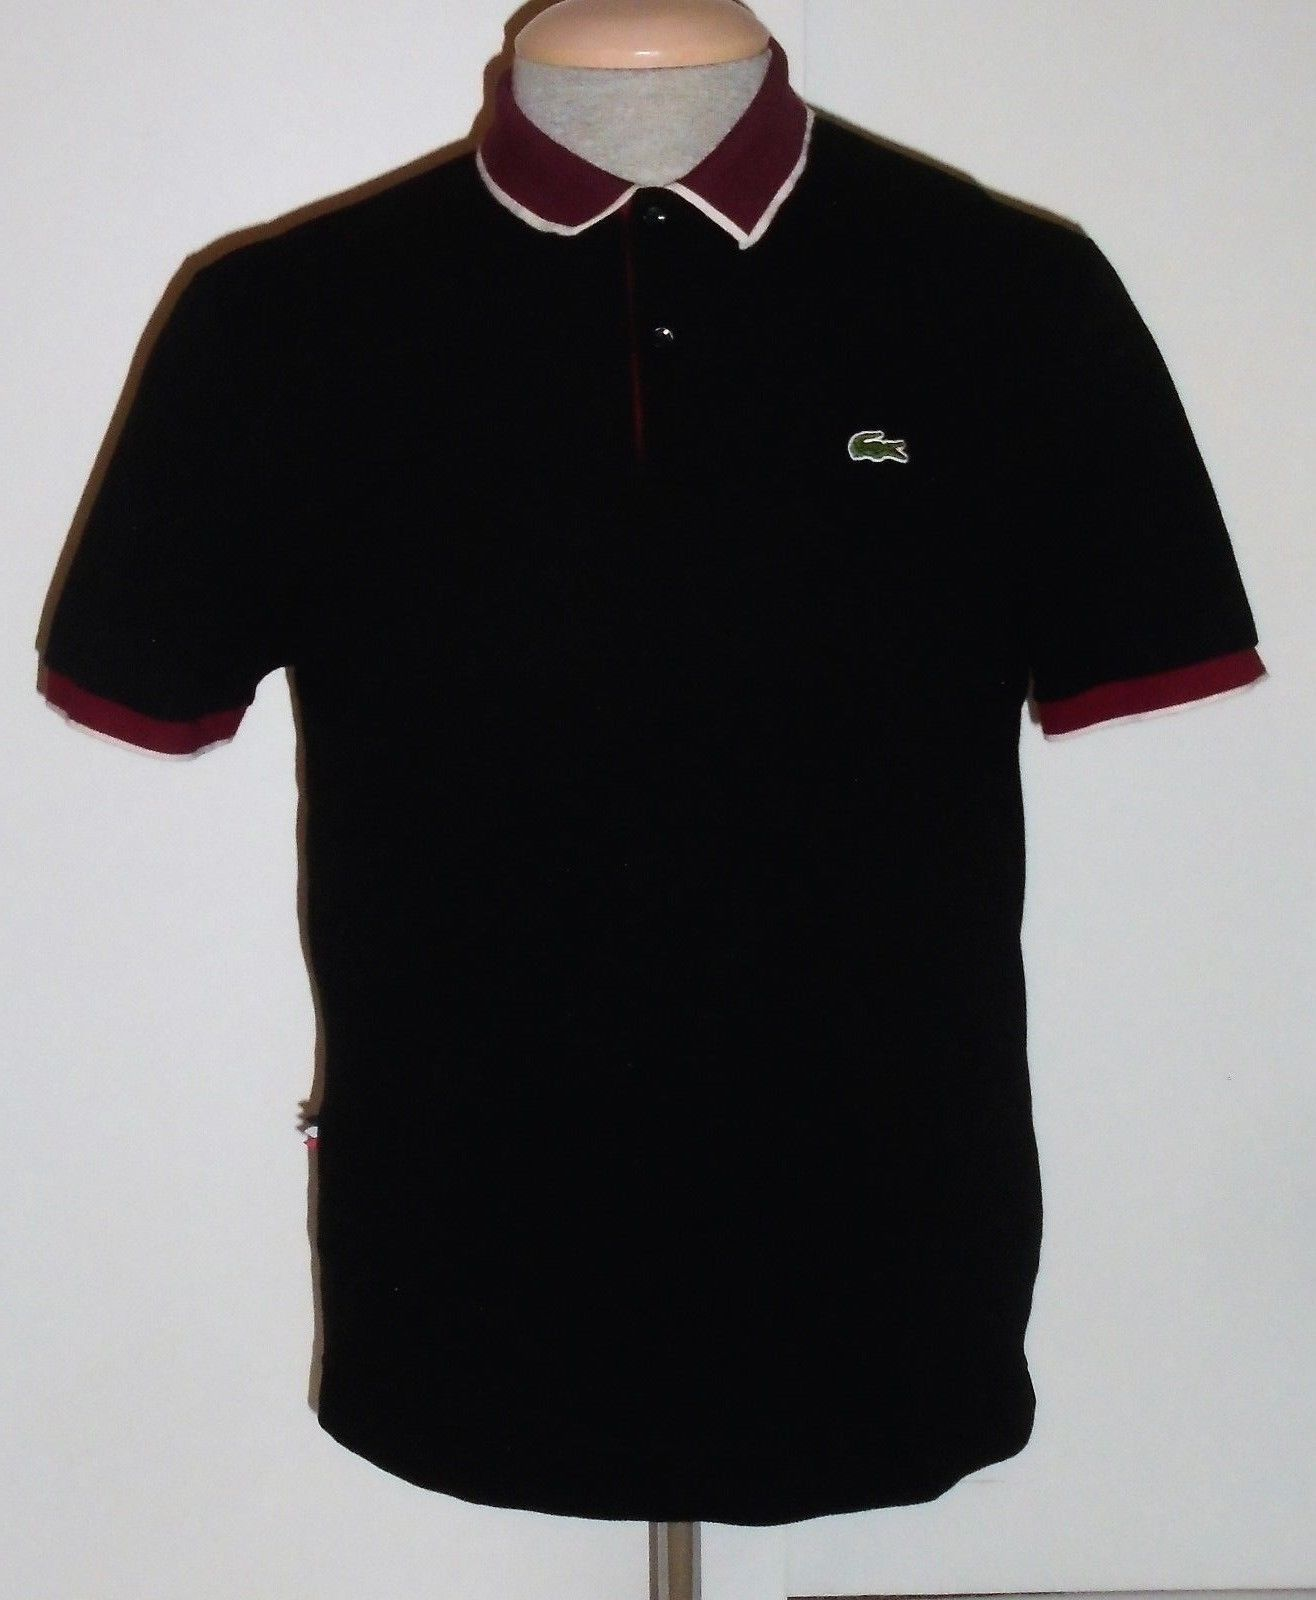 Lacoste live gator logo retro black short sleeve polo shirt mens 6 gator logo retro black short sleeve polo shirt mens 6 sciox Images